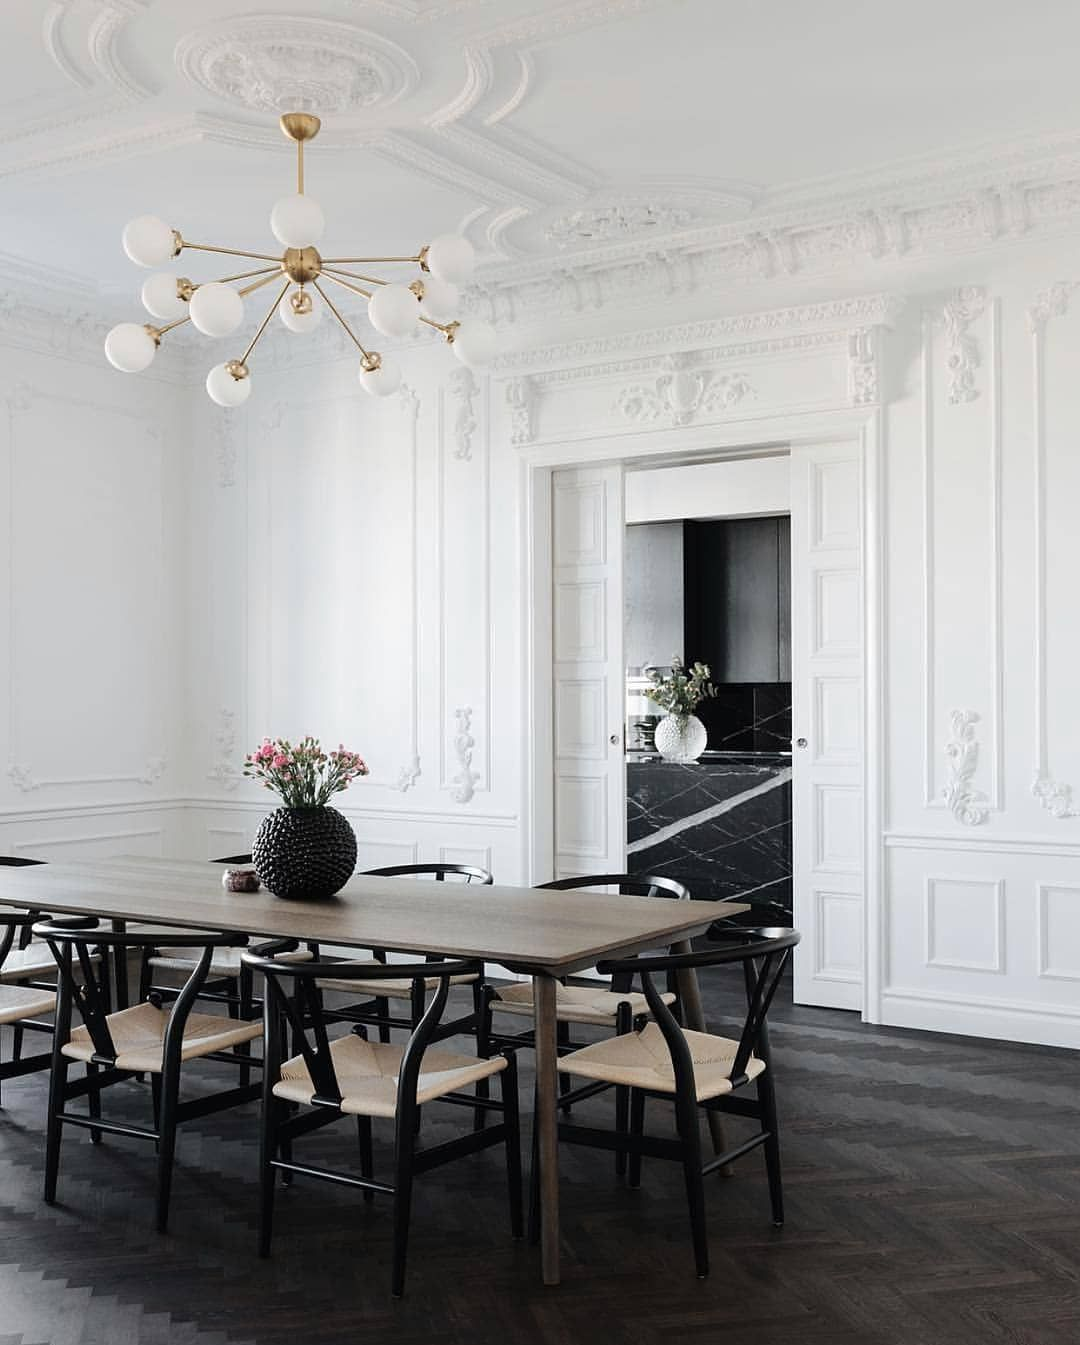 Designed By Christinaboutza For Her Swedish Home Interior Design Dining Room Design Dining Room Inspiration